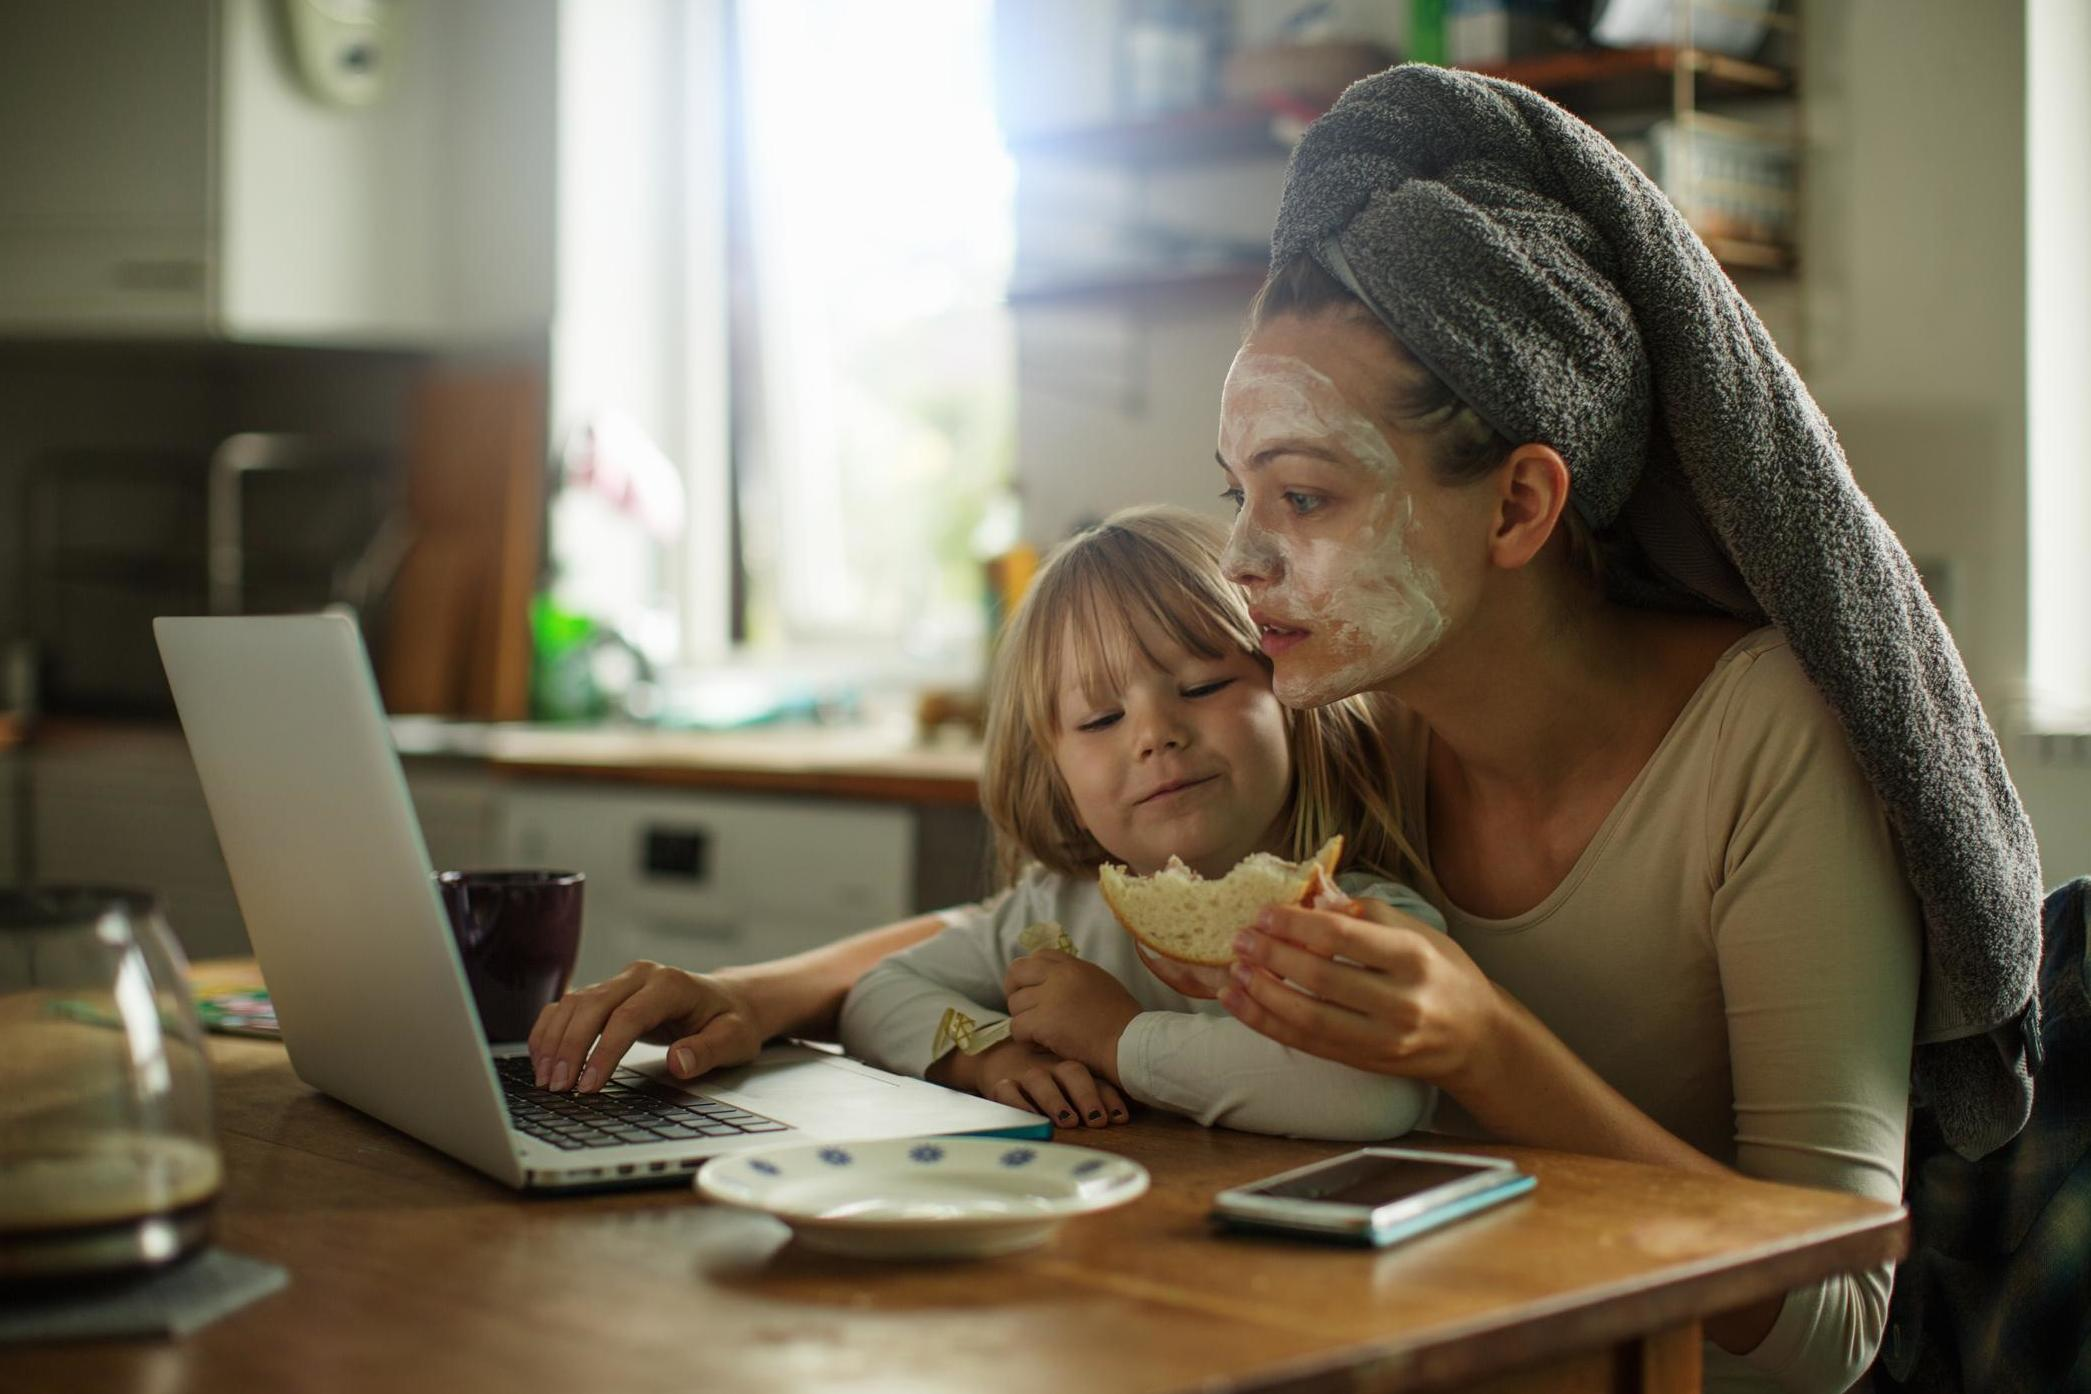 Being a mother is equivalent to 2.5 full-time jobs, survey finds